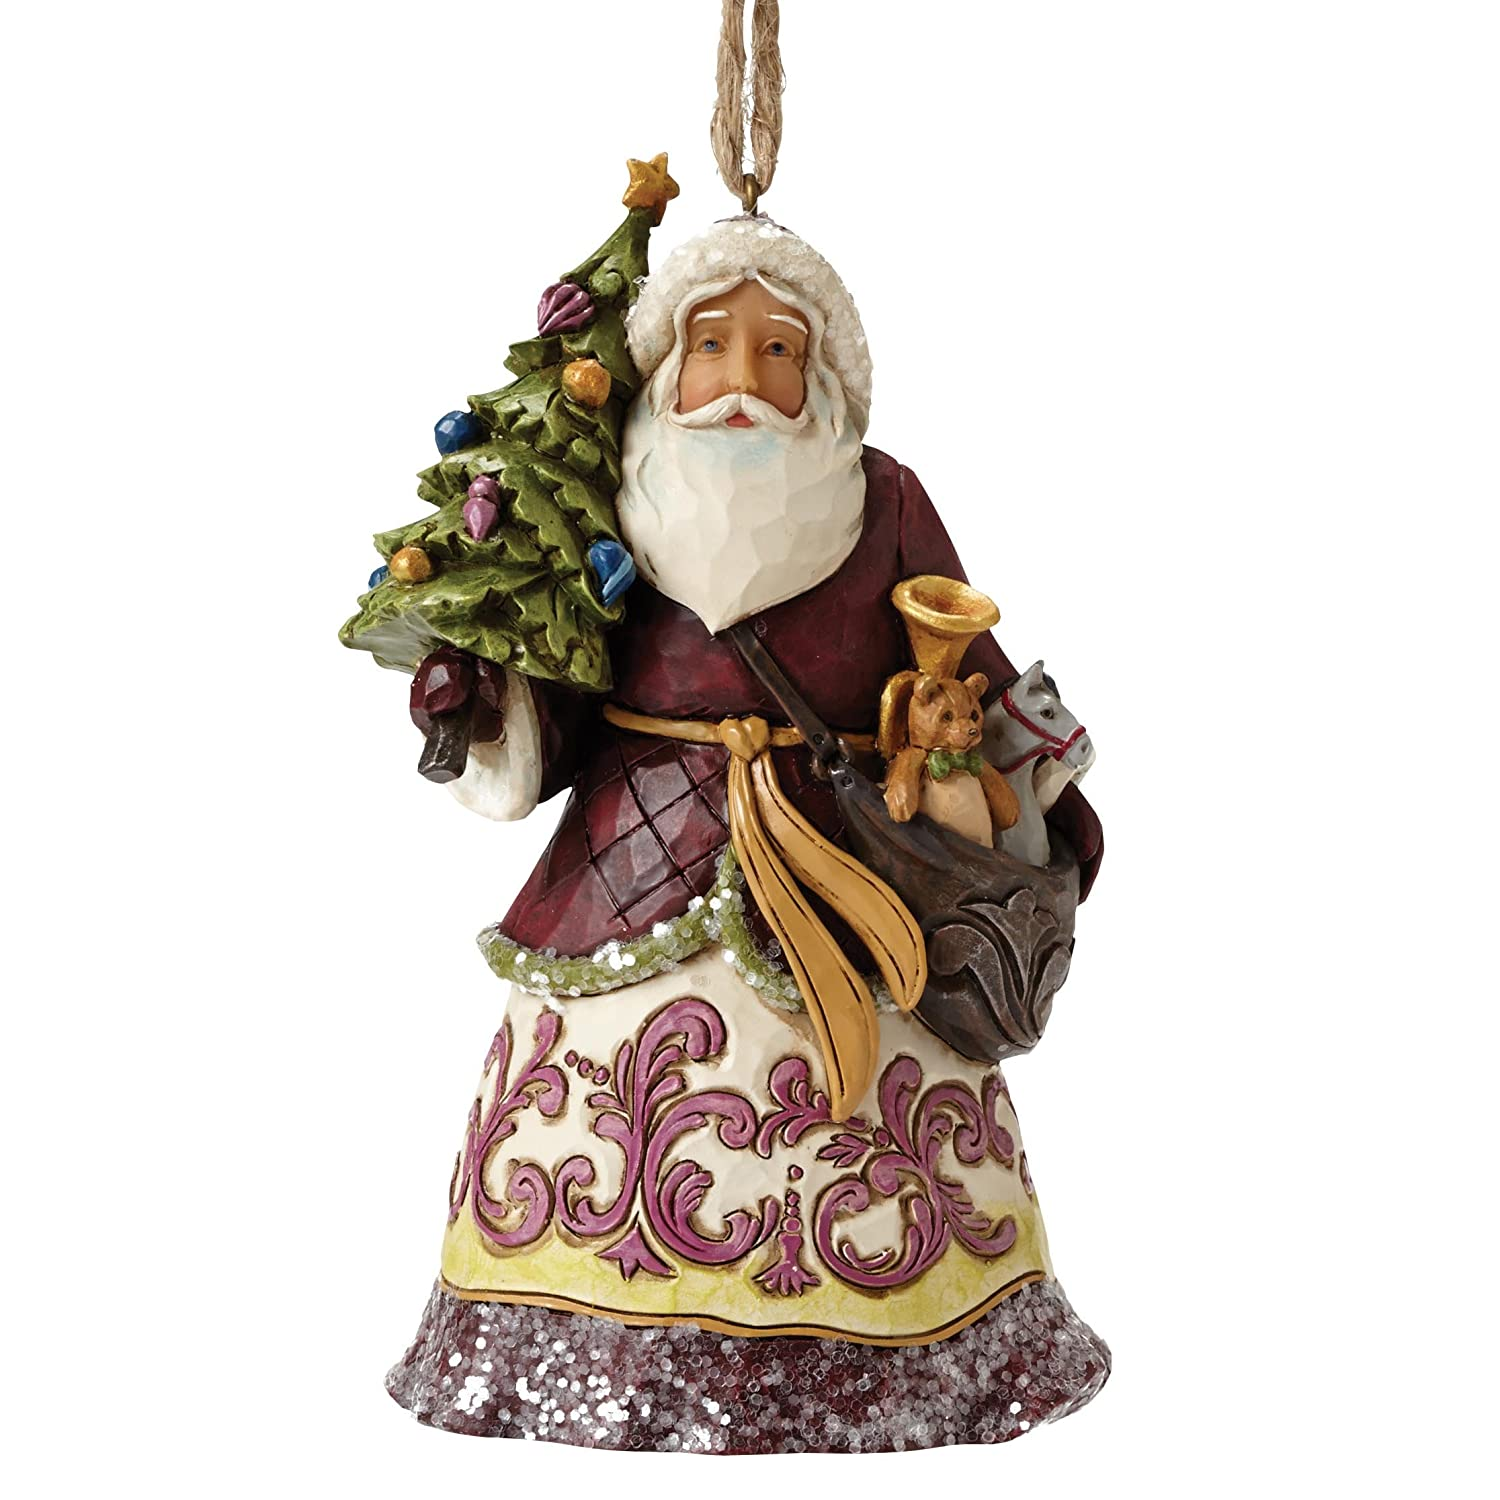 Enesco Hearwood Creek By Jim Shore HWC Sospensione Babbo Natale con Albero, PVC,, 8x10x12.5 cm 4053699